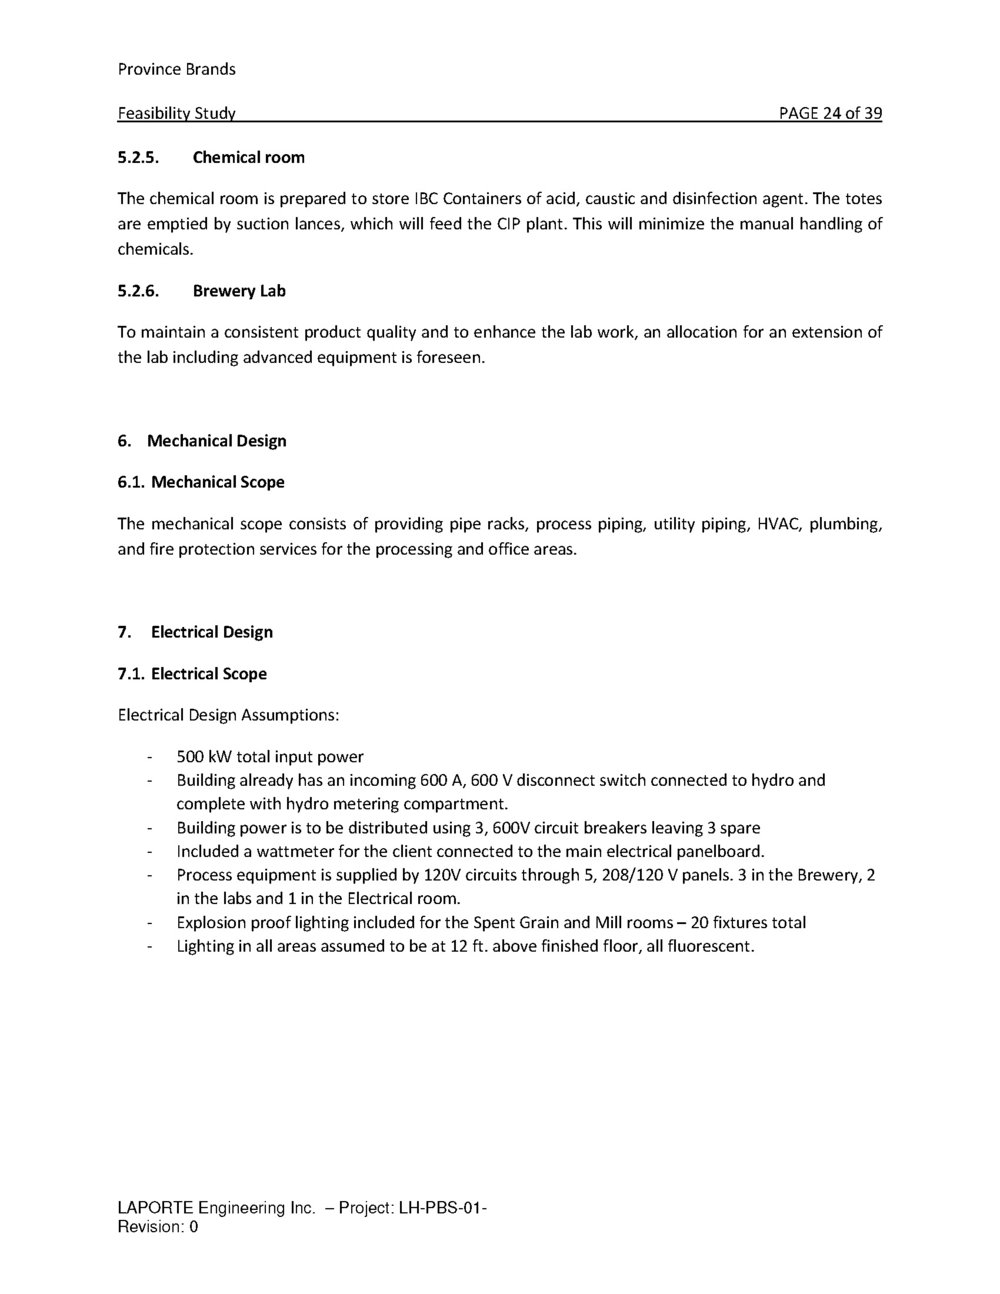 LH-PBS-01_Feasibility Study Report_01_Page_24.jpg